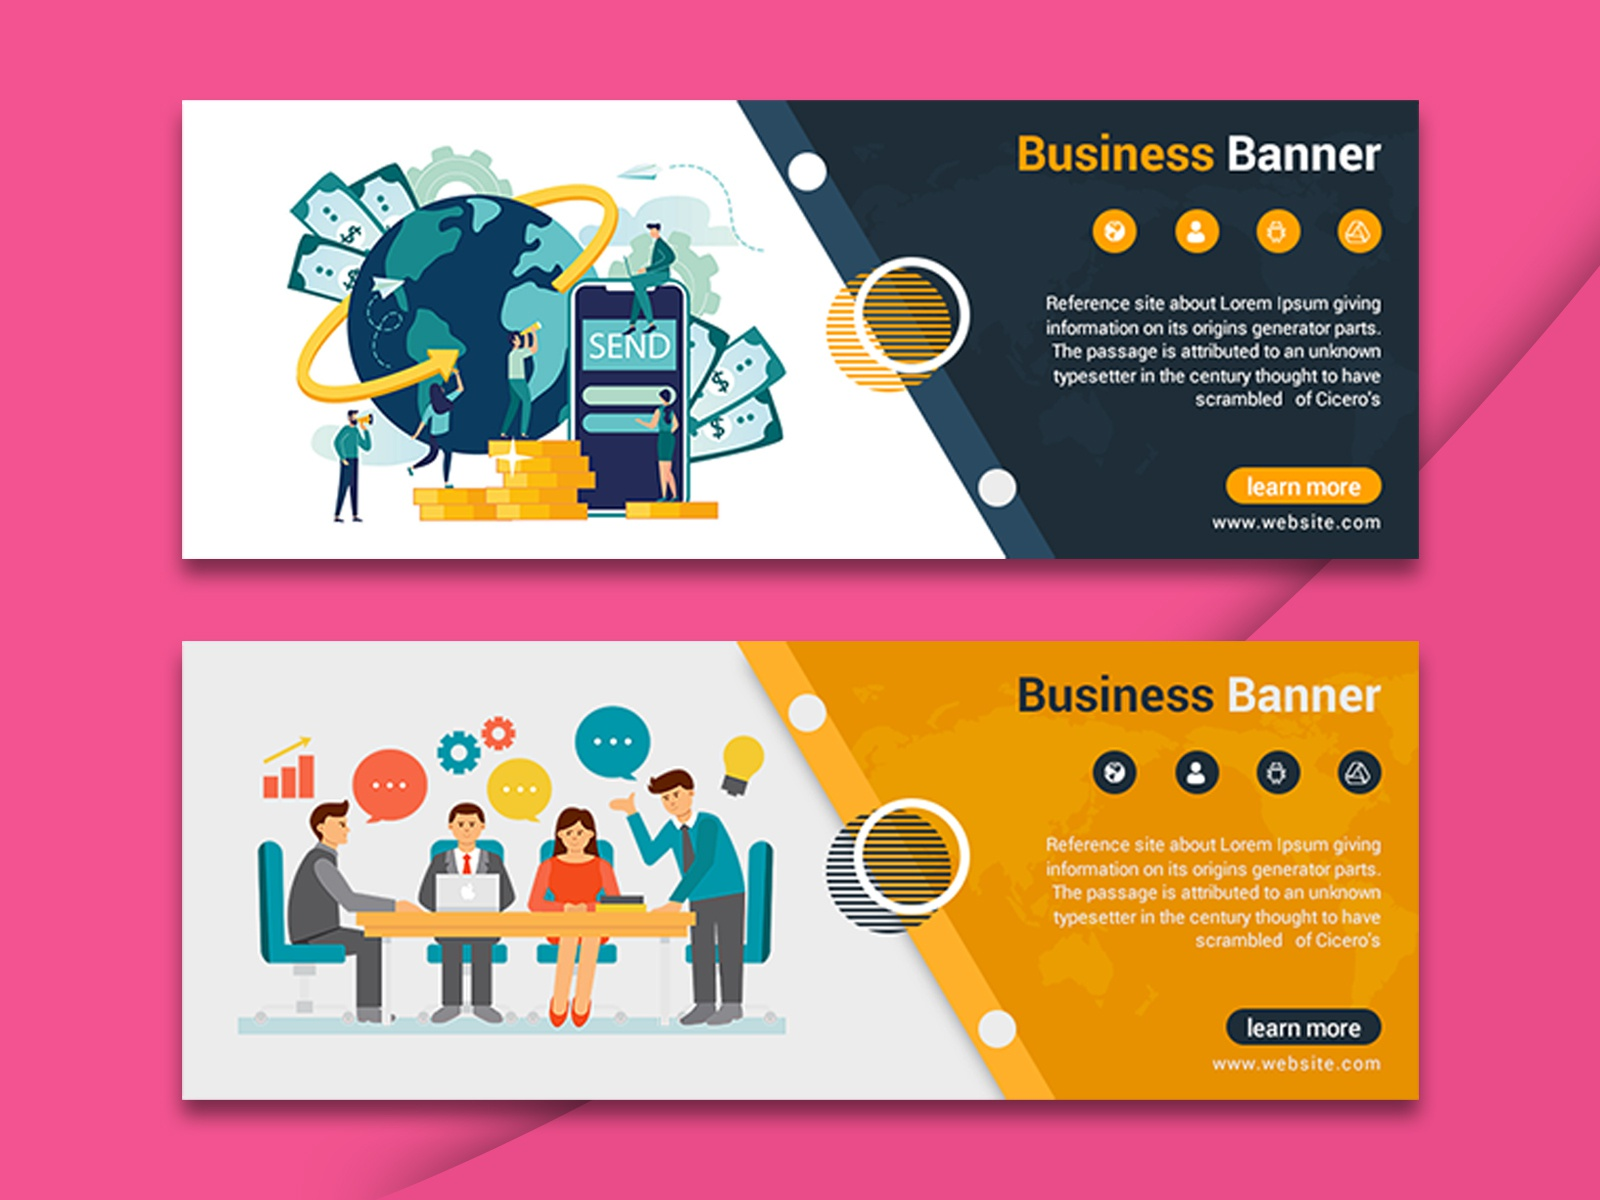 Banner Design Vectors And Psd Files Free Download By Arif Islam On Dribbble